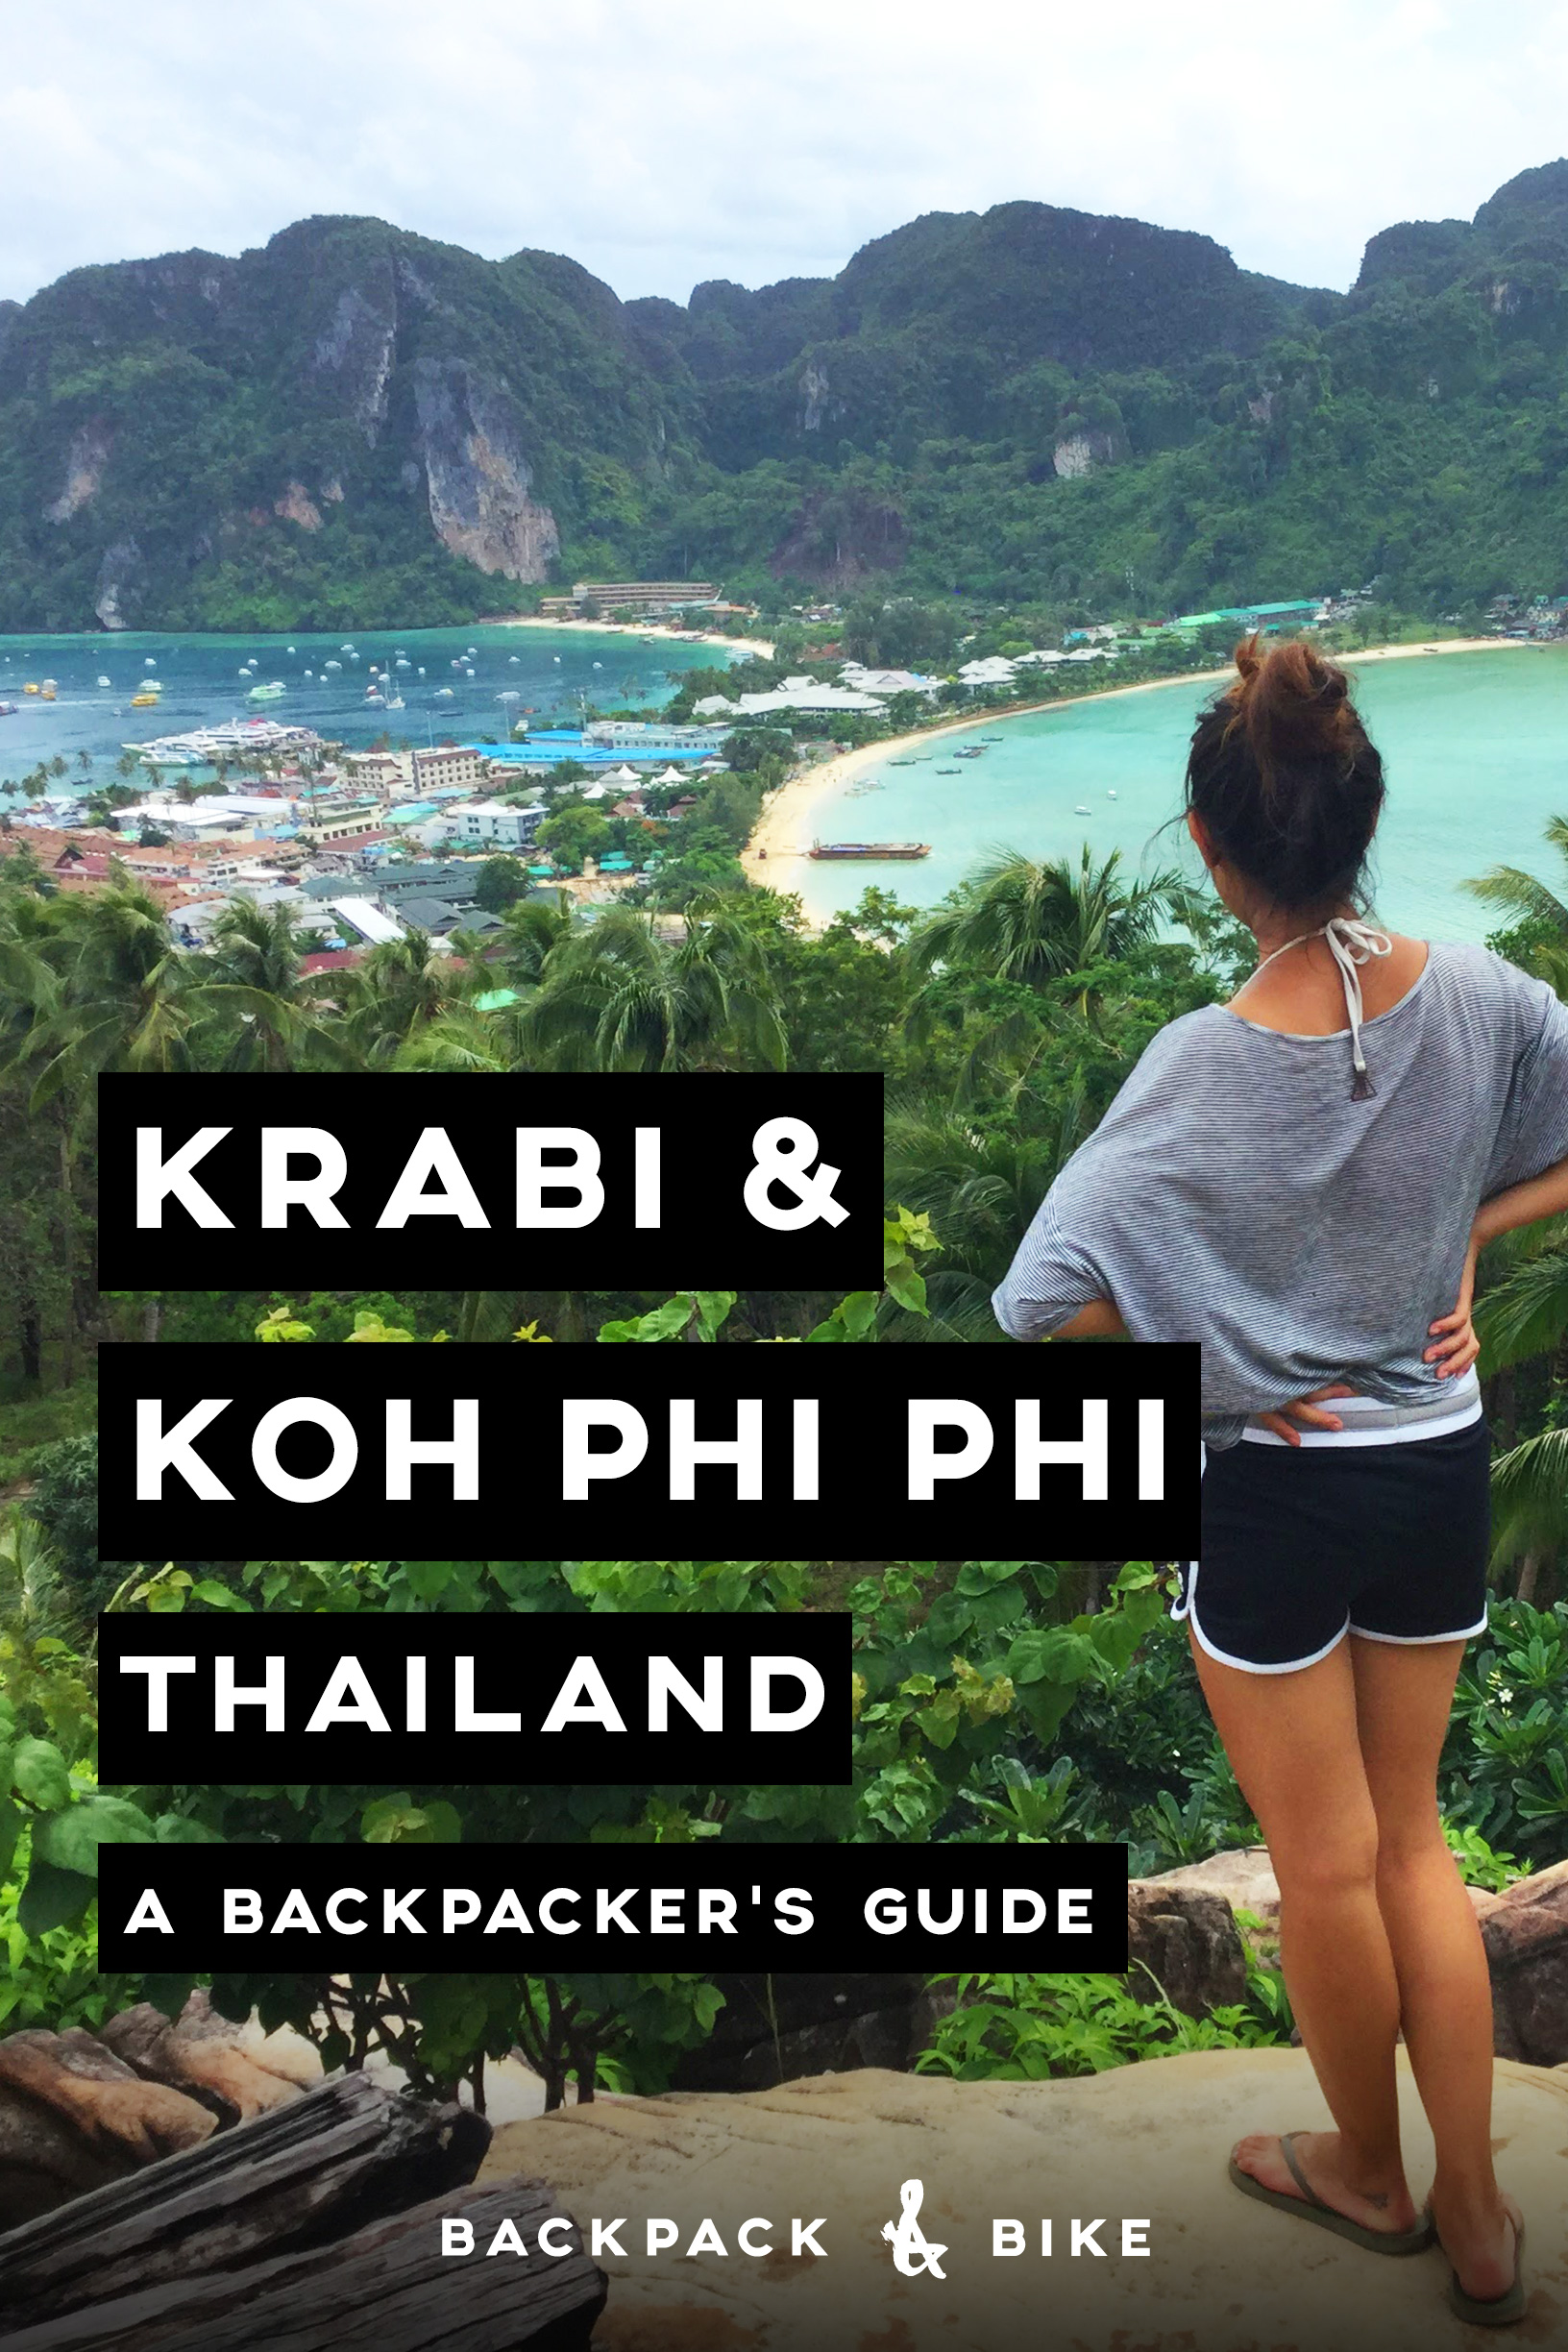 South Thailand is probably best known for its beautiful beaches, wild island parties, and delicious food. Here's everything you need to know about backpacking Krabi & Koh Phi Phi on a budget!